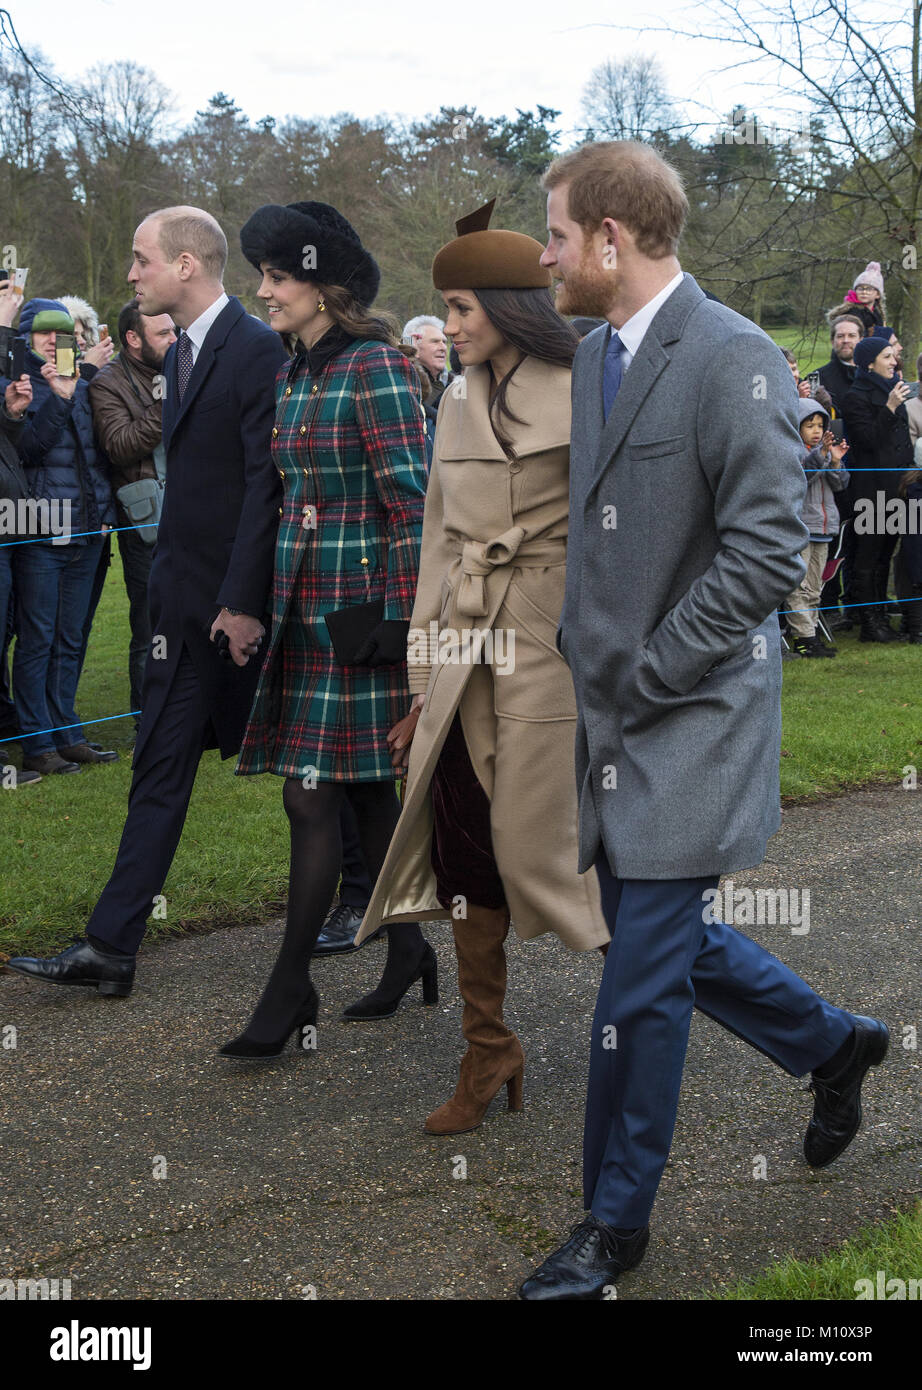 The British Royal family arrive at Sandringham to celebrate Christmas Day  Featuring: Prince William, Duke of Cambridge, - Stock Image